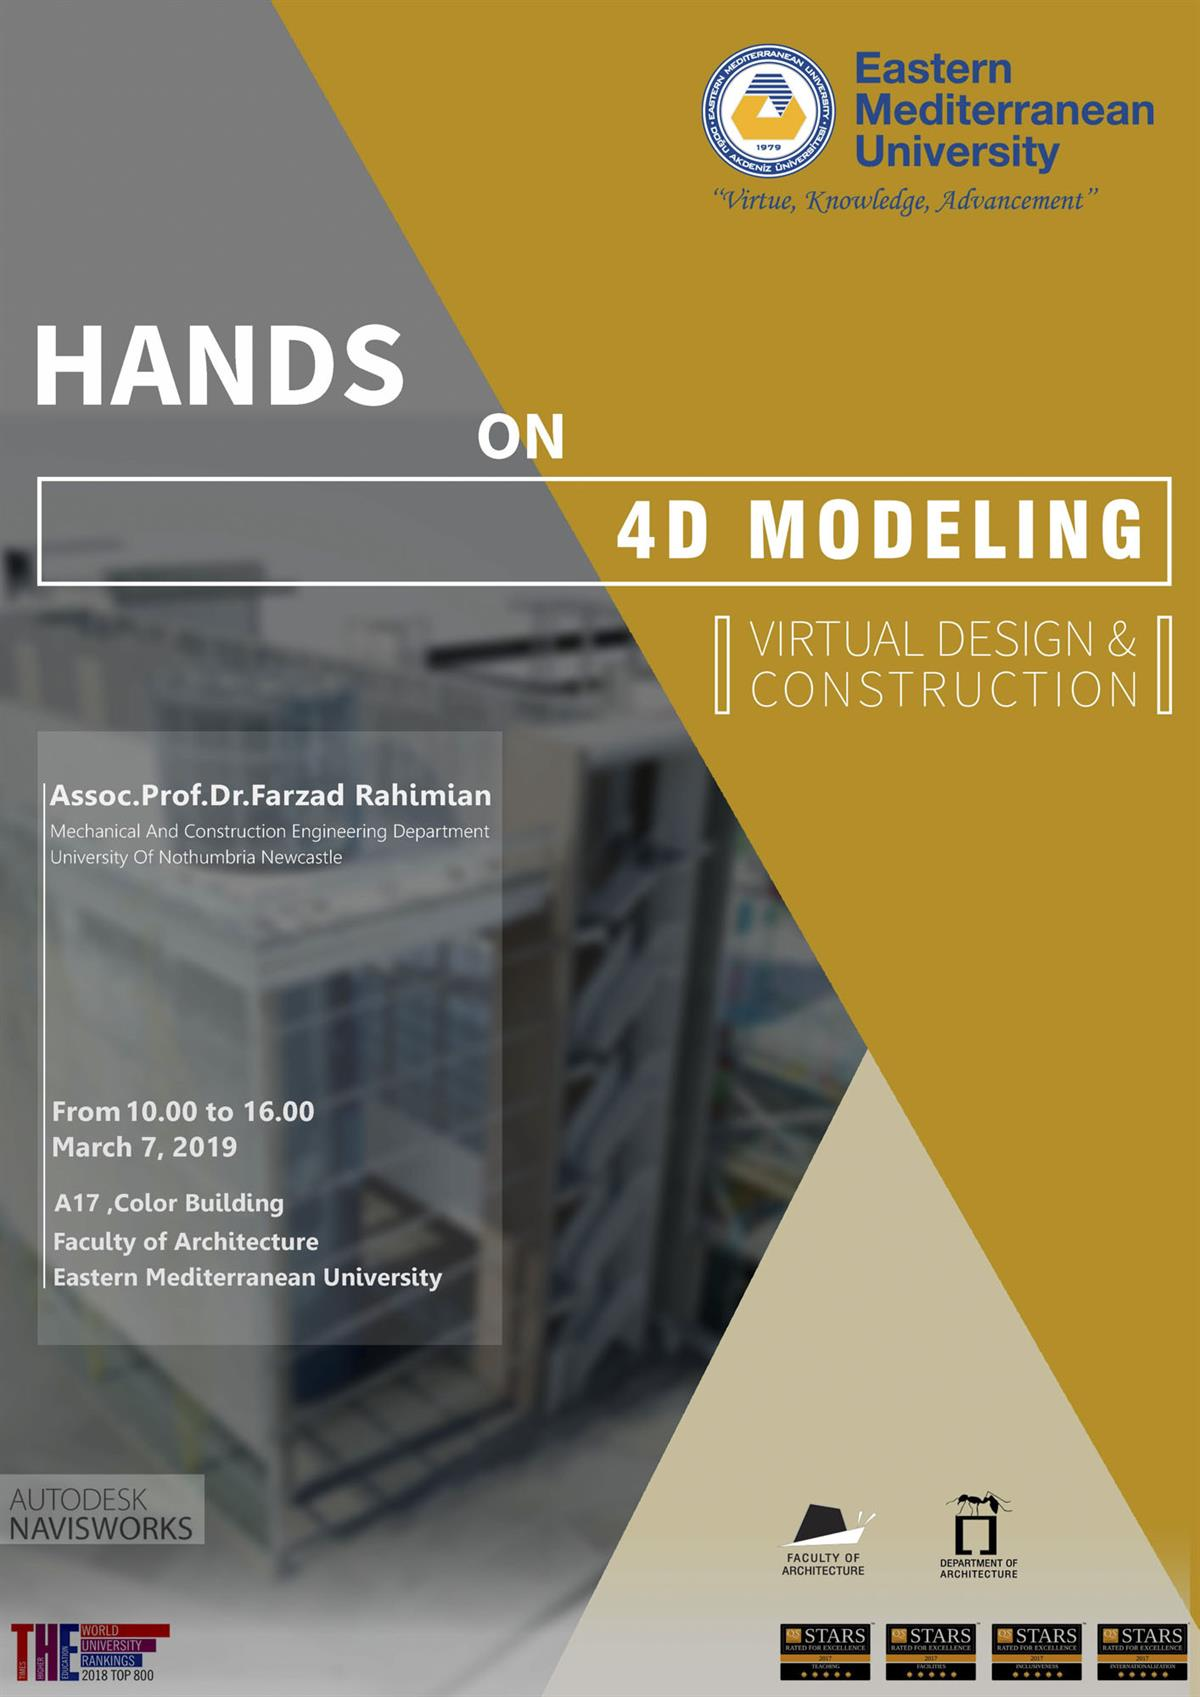 Hands on 4D Modeling and Virtual Design and Construction